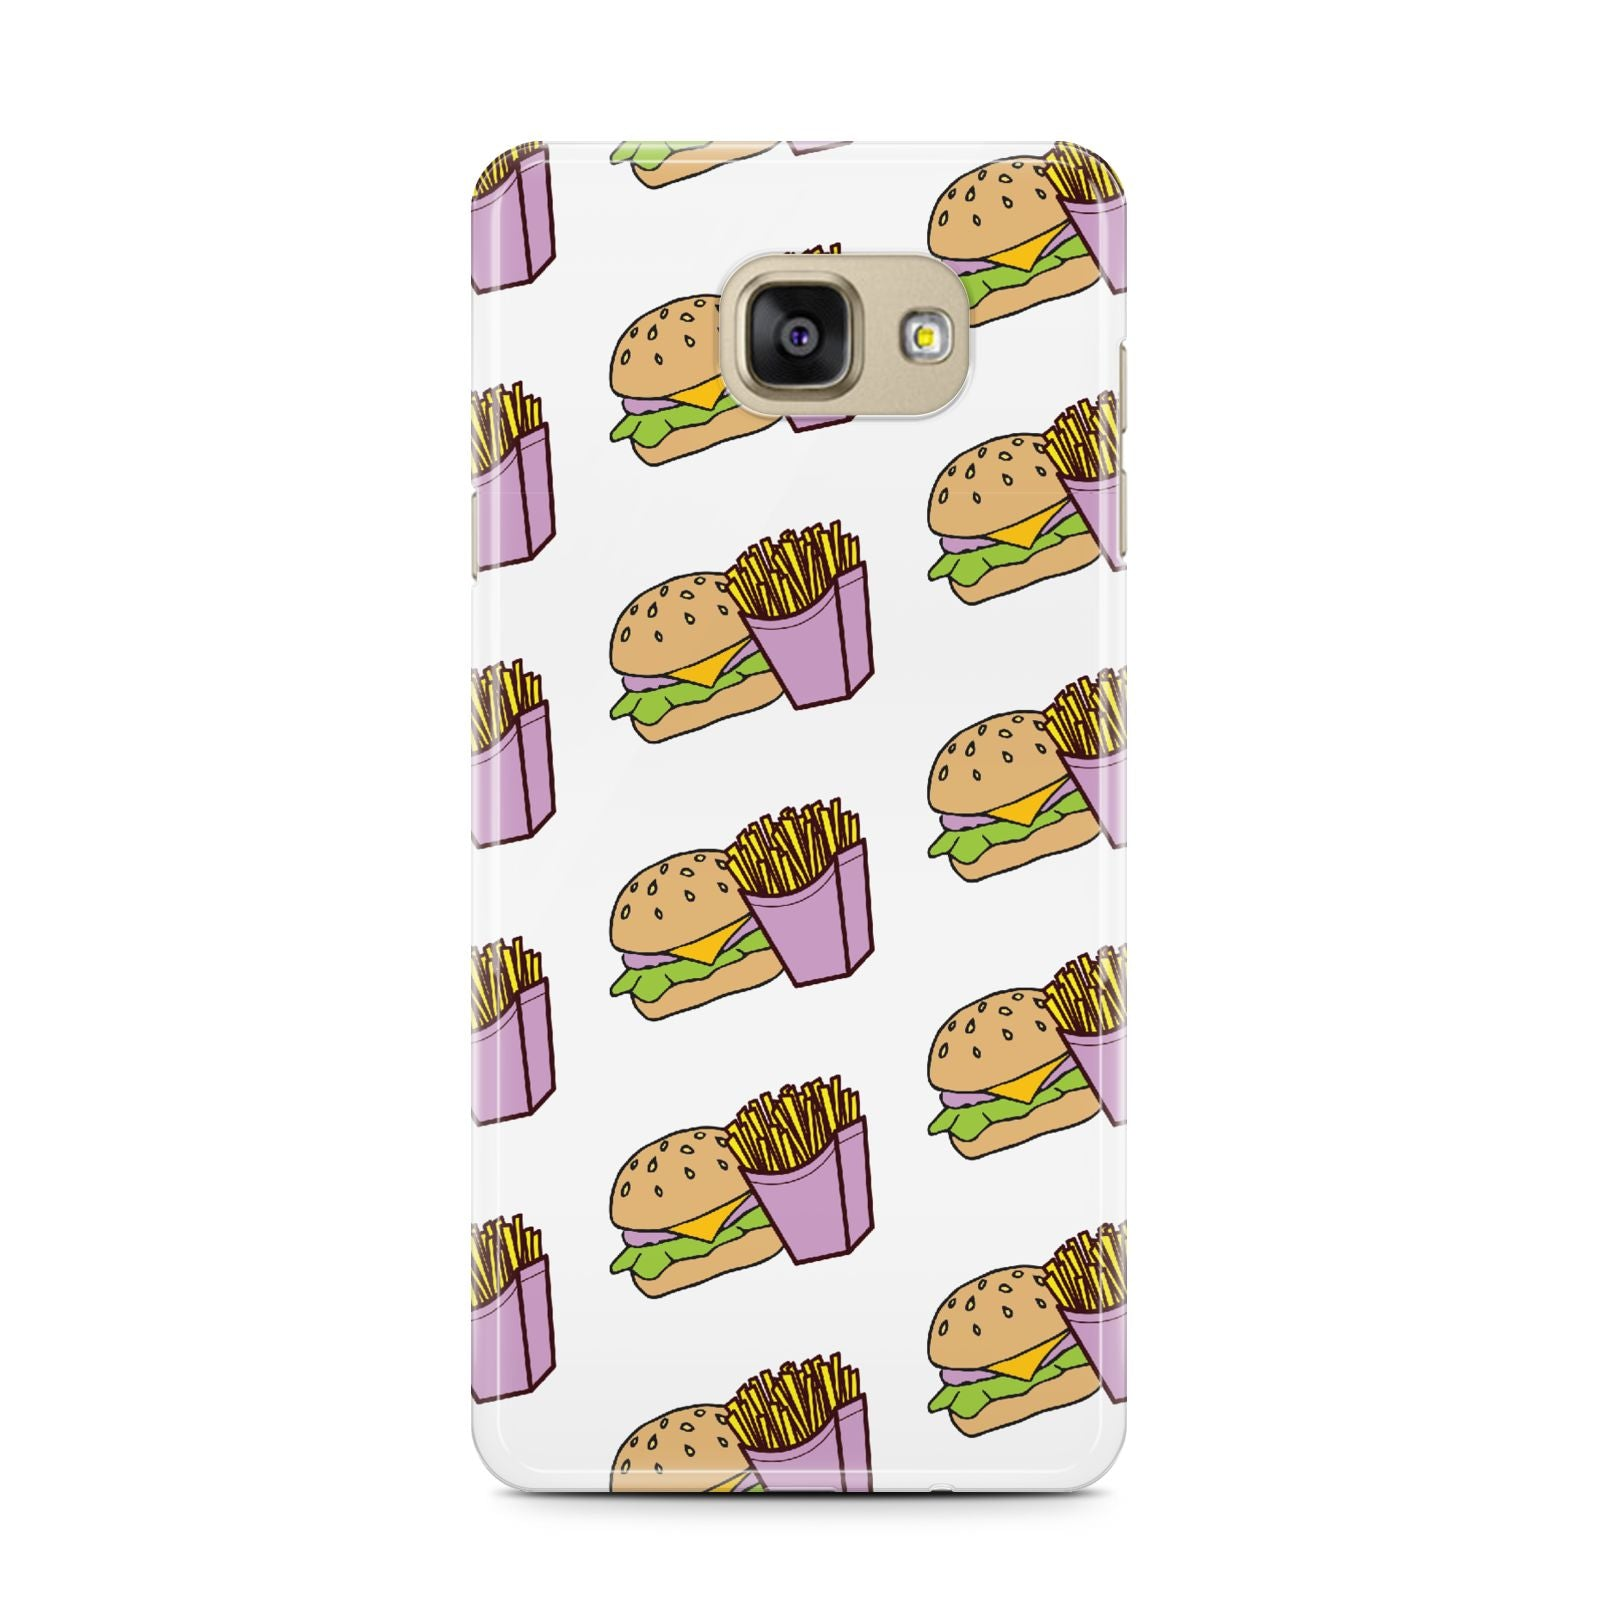 Burger Fries Fast Food Samsung Galaxy A7 2016 Case on gold phone